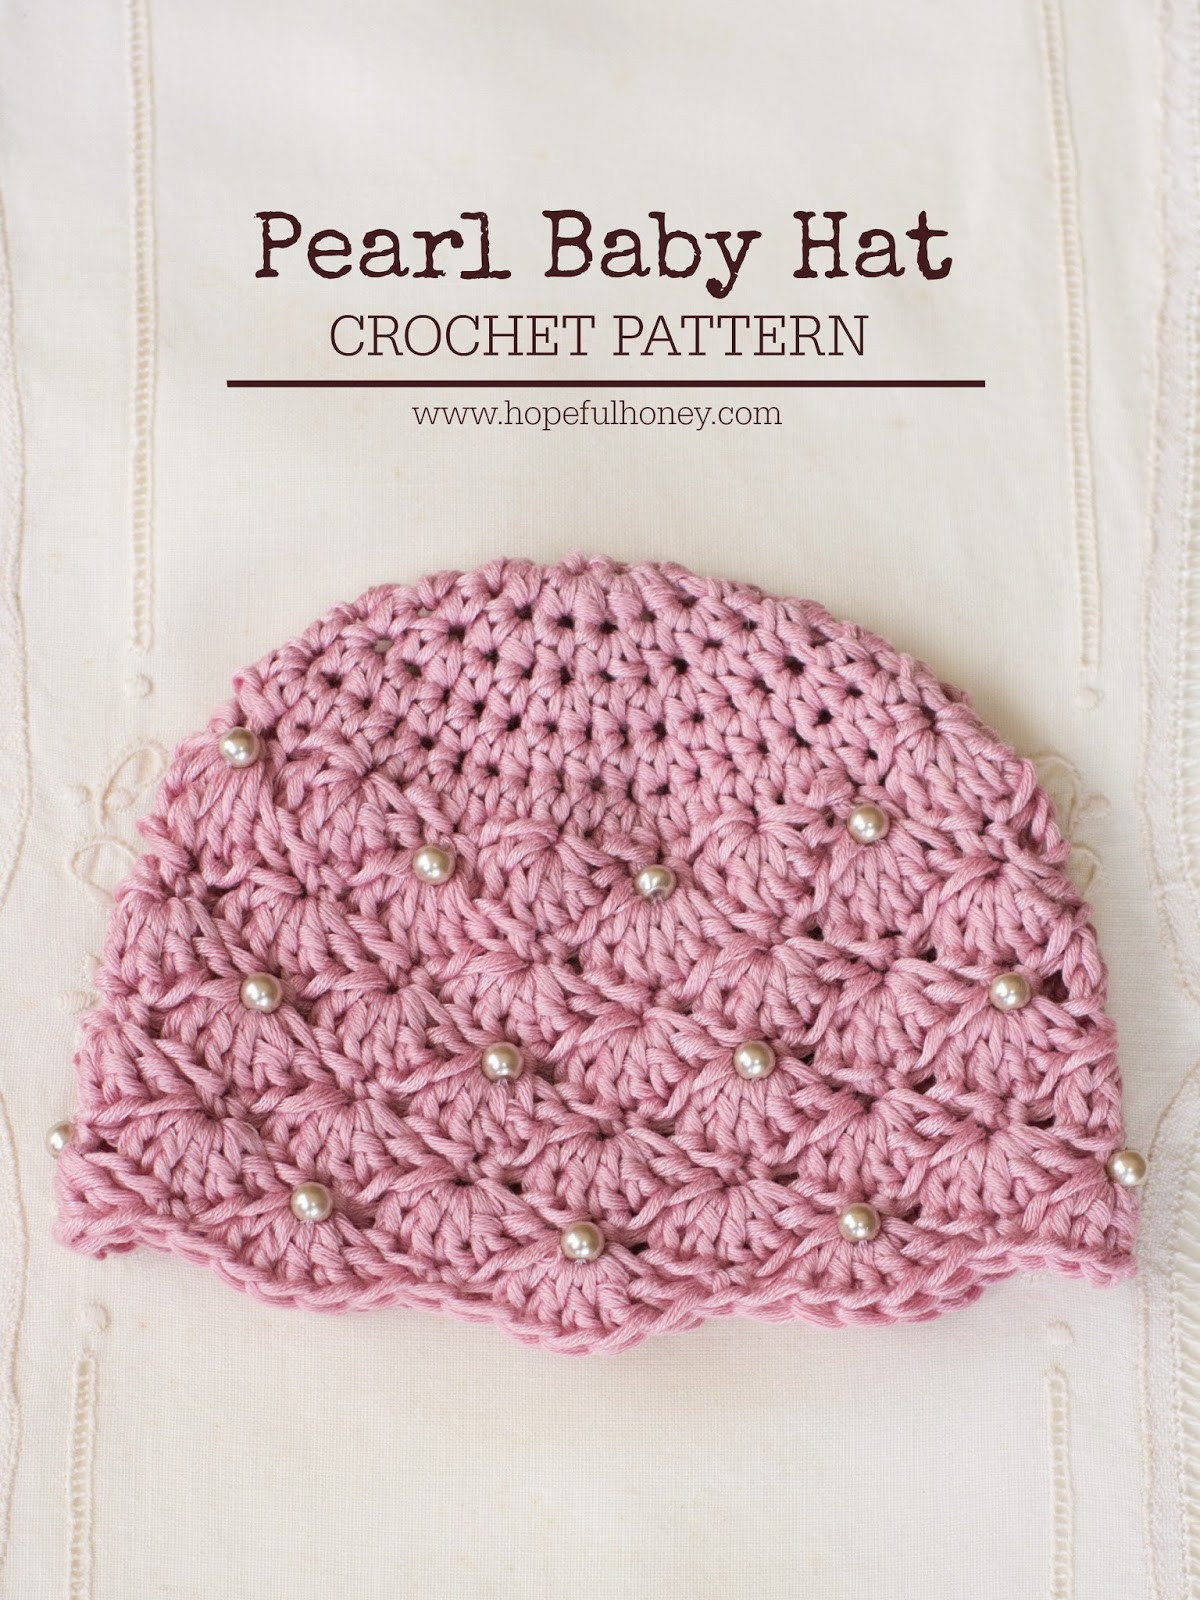 Crochet Girls Hats Beautiful Free Crochet Patterns for Girls Hats Of New 46 Ideas Crochet Girls Hats